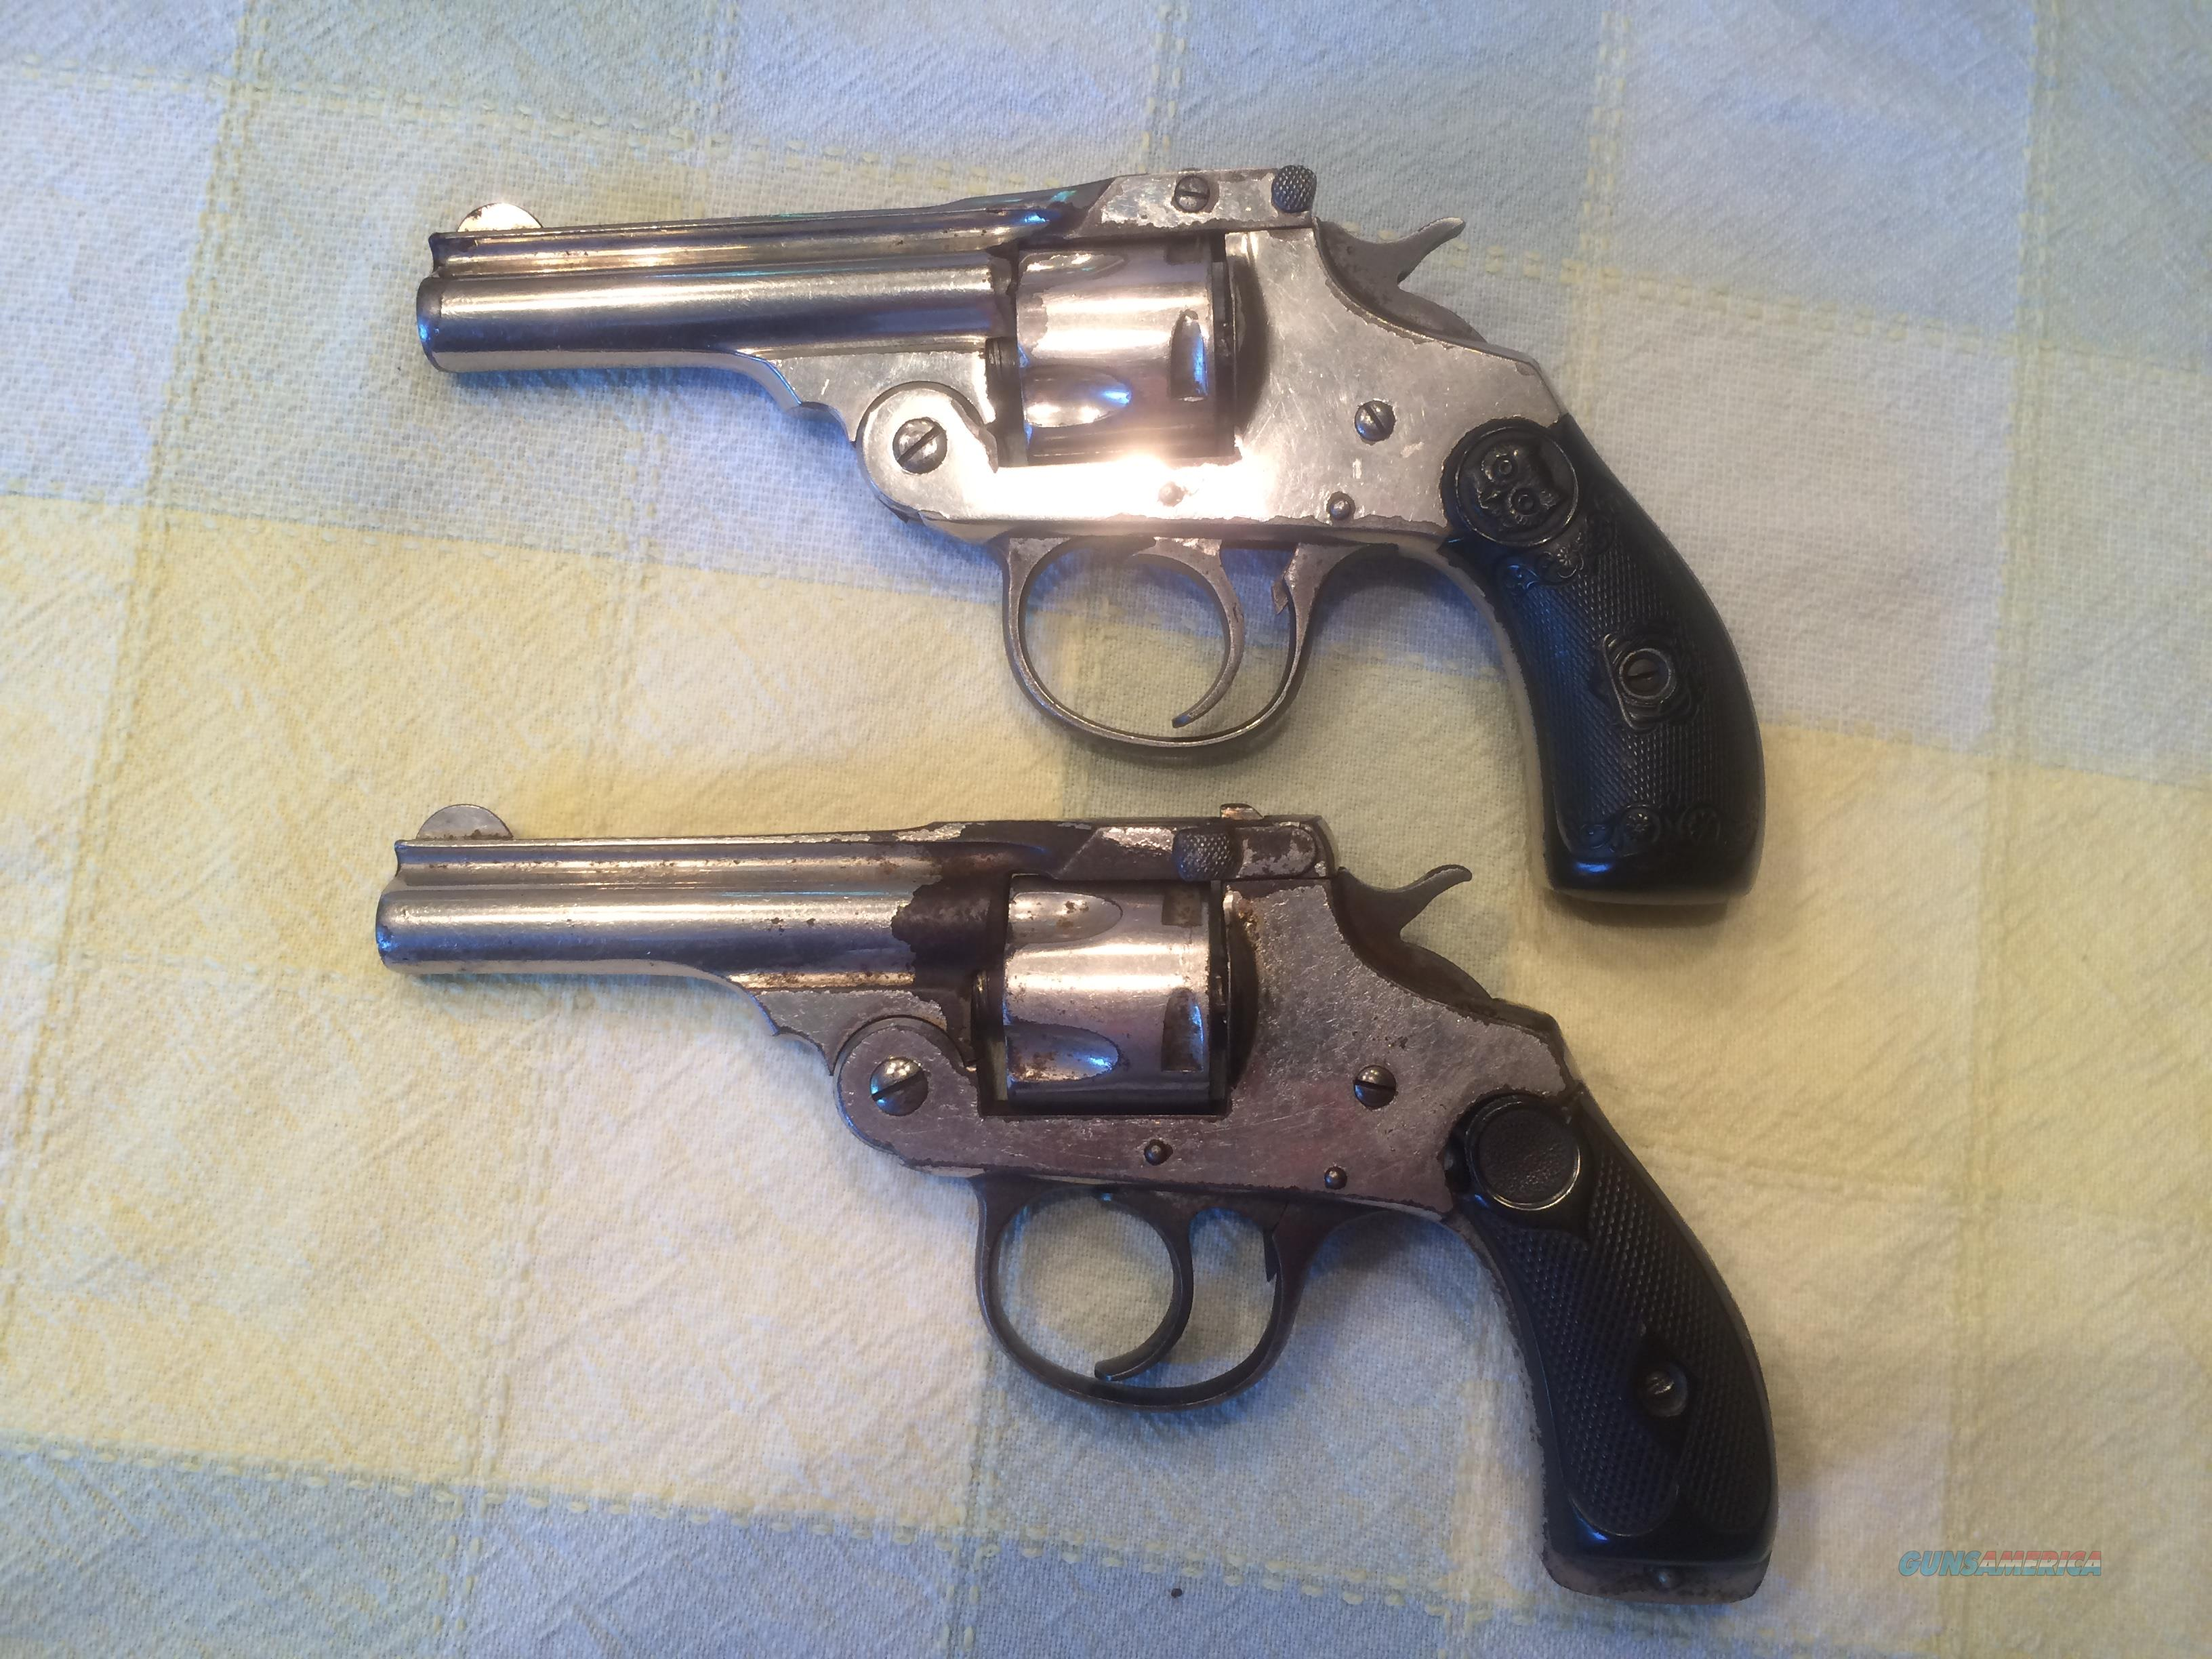 IVER JOHNSON ARMS & CYCLE WORKS - 2 REVOLVERS - SOLD FOR PARTS ONLY.  Guns > Pistols > Iver Johnson Pistols